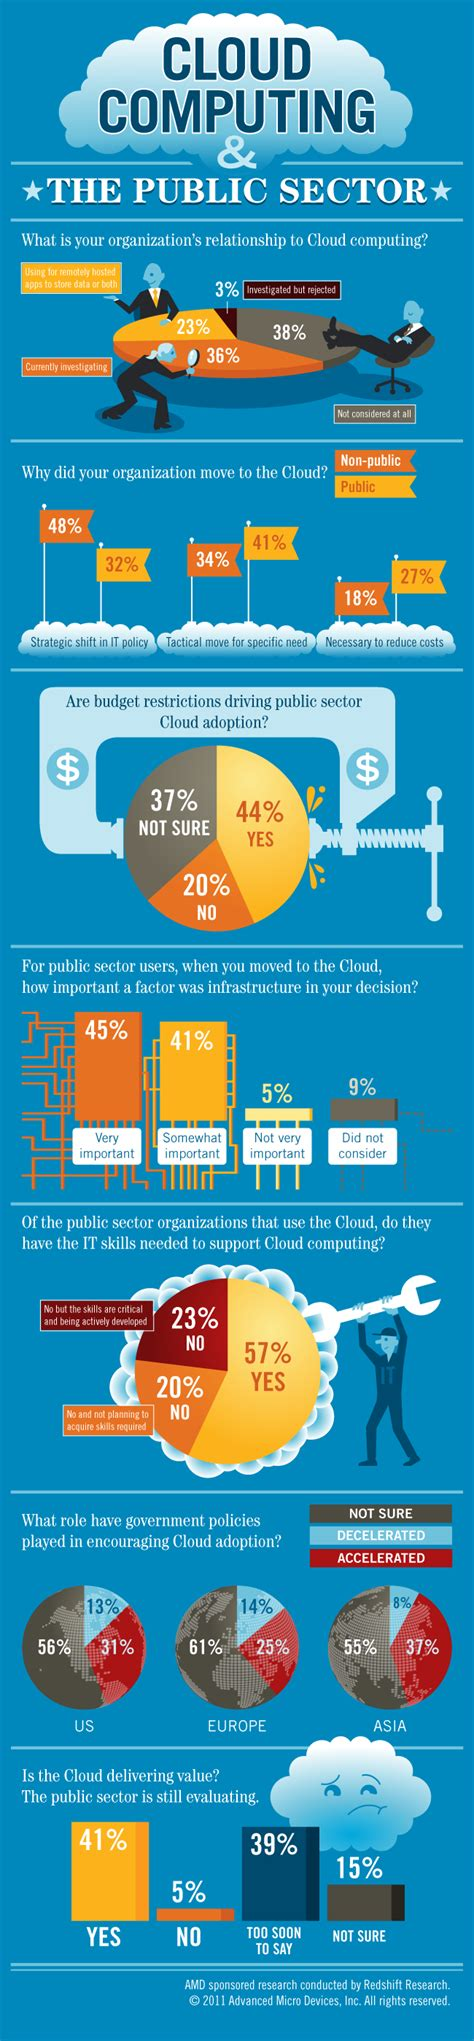 cloud computing infographic infographic cloud computing the public sector